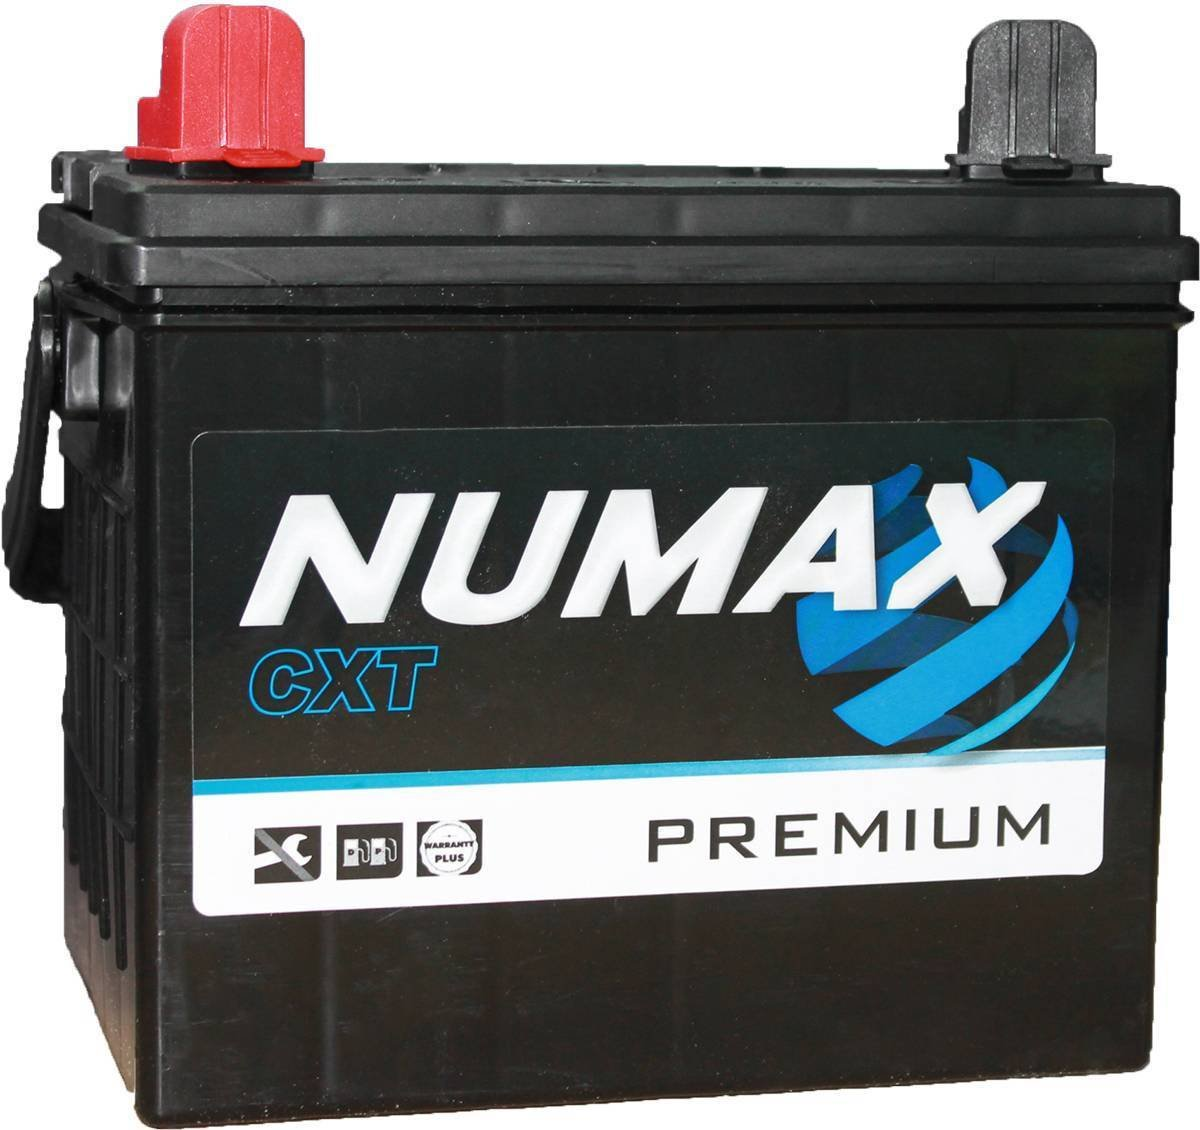 Lawn Mower Battery 12V 32Ah 896 CXT Numax U19